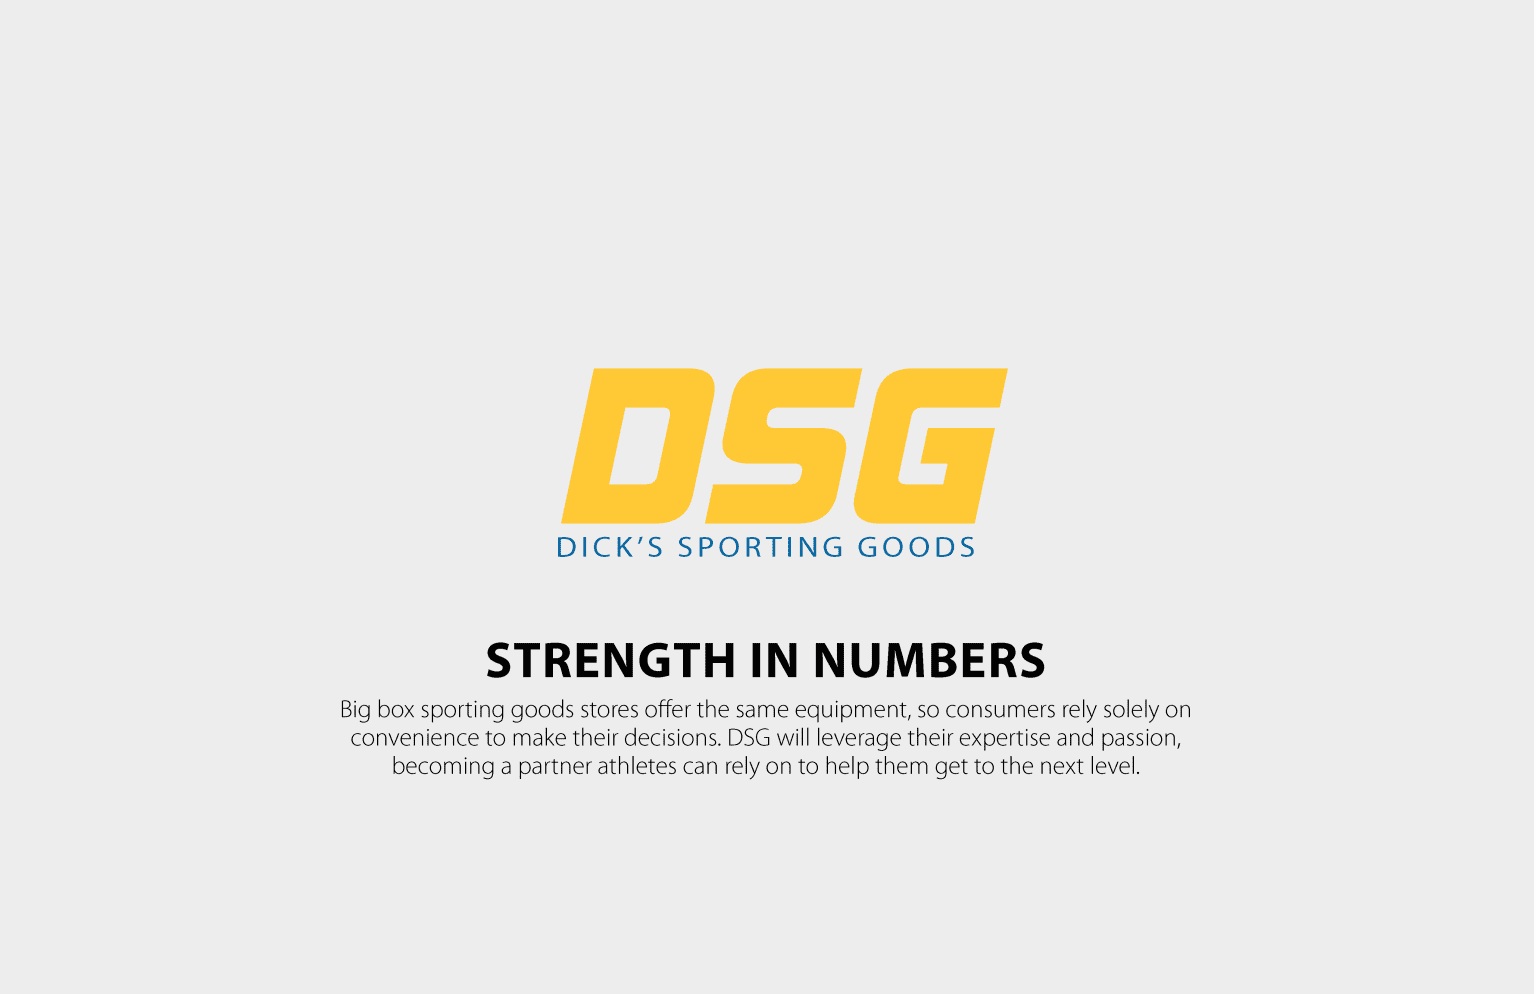 Strength in Numbers | Dick's Sporting Goods